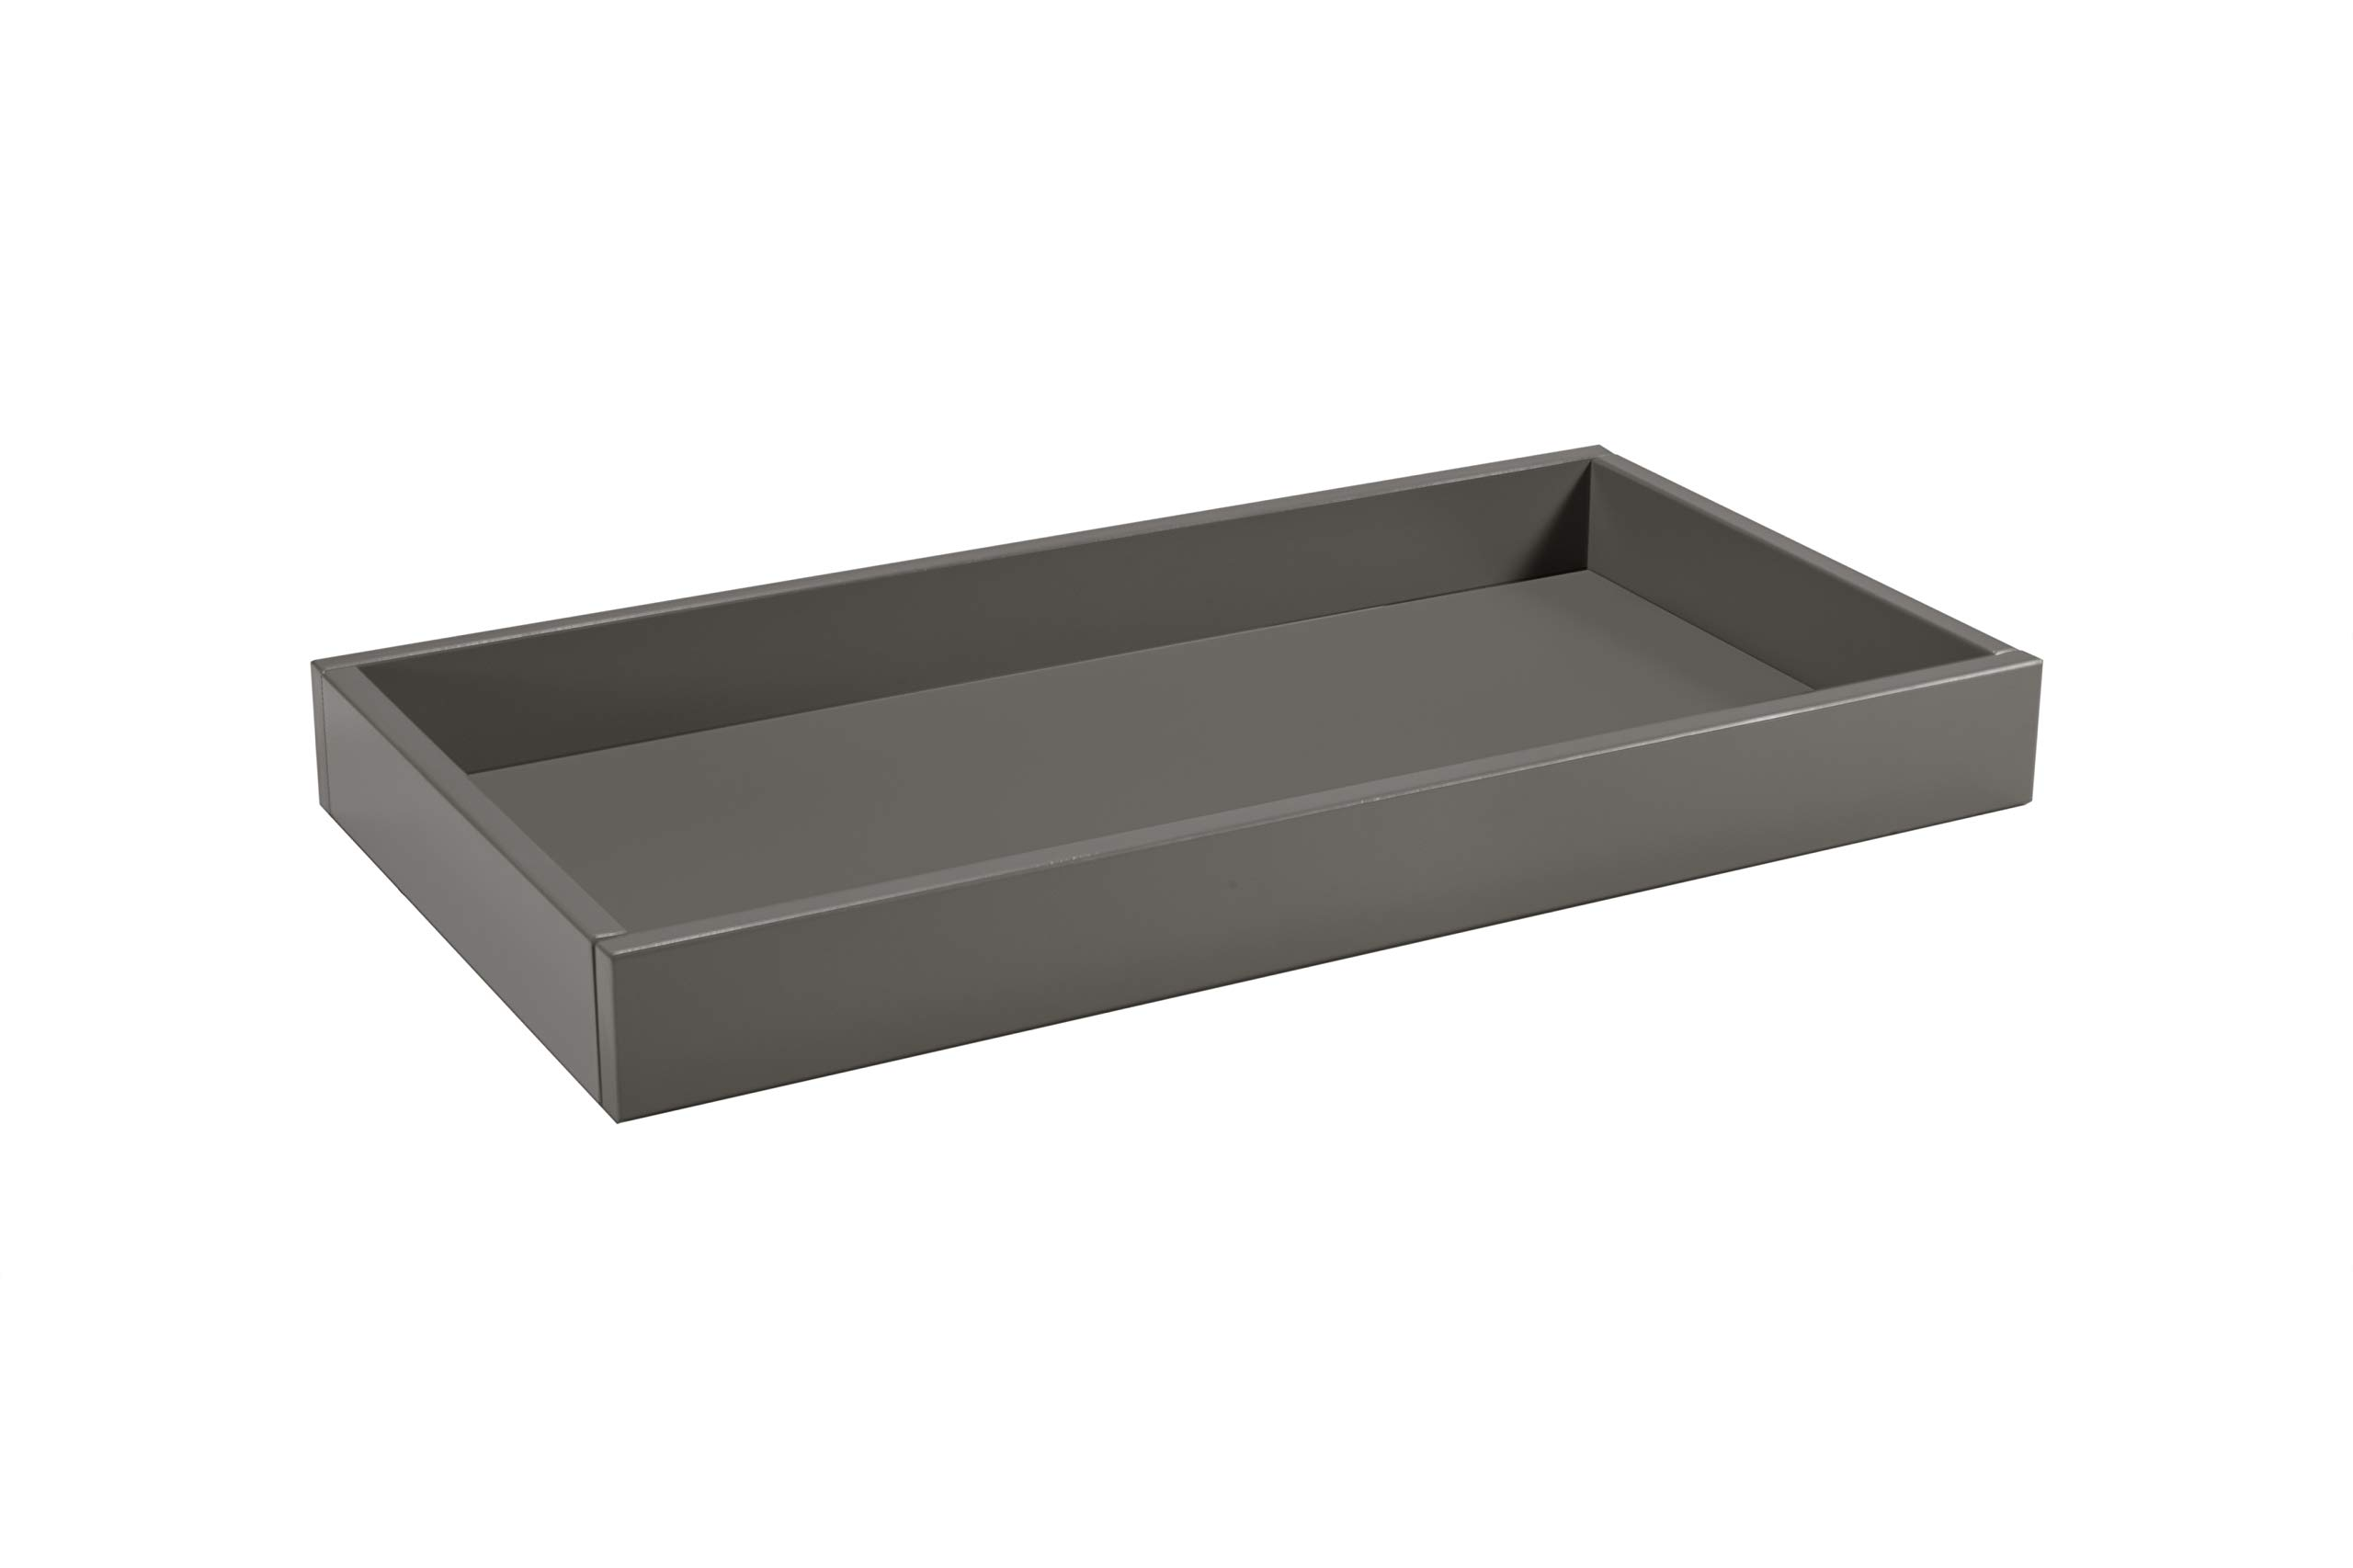 DaVinci Universal Removable Changing Tray, Slate